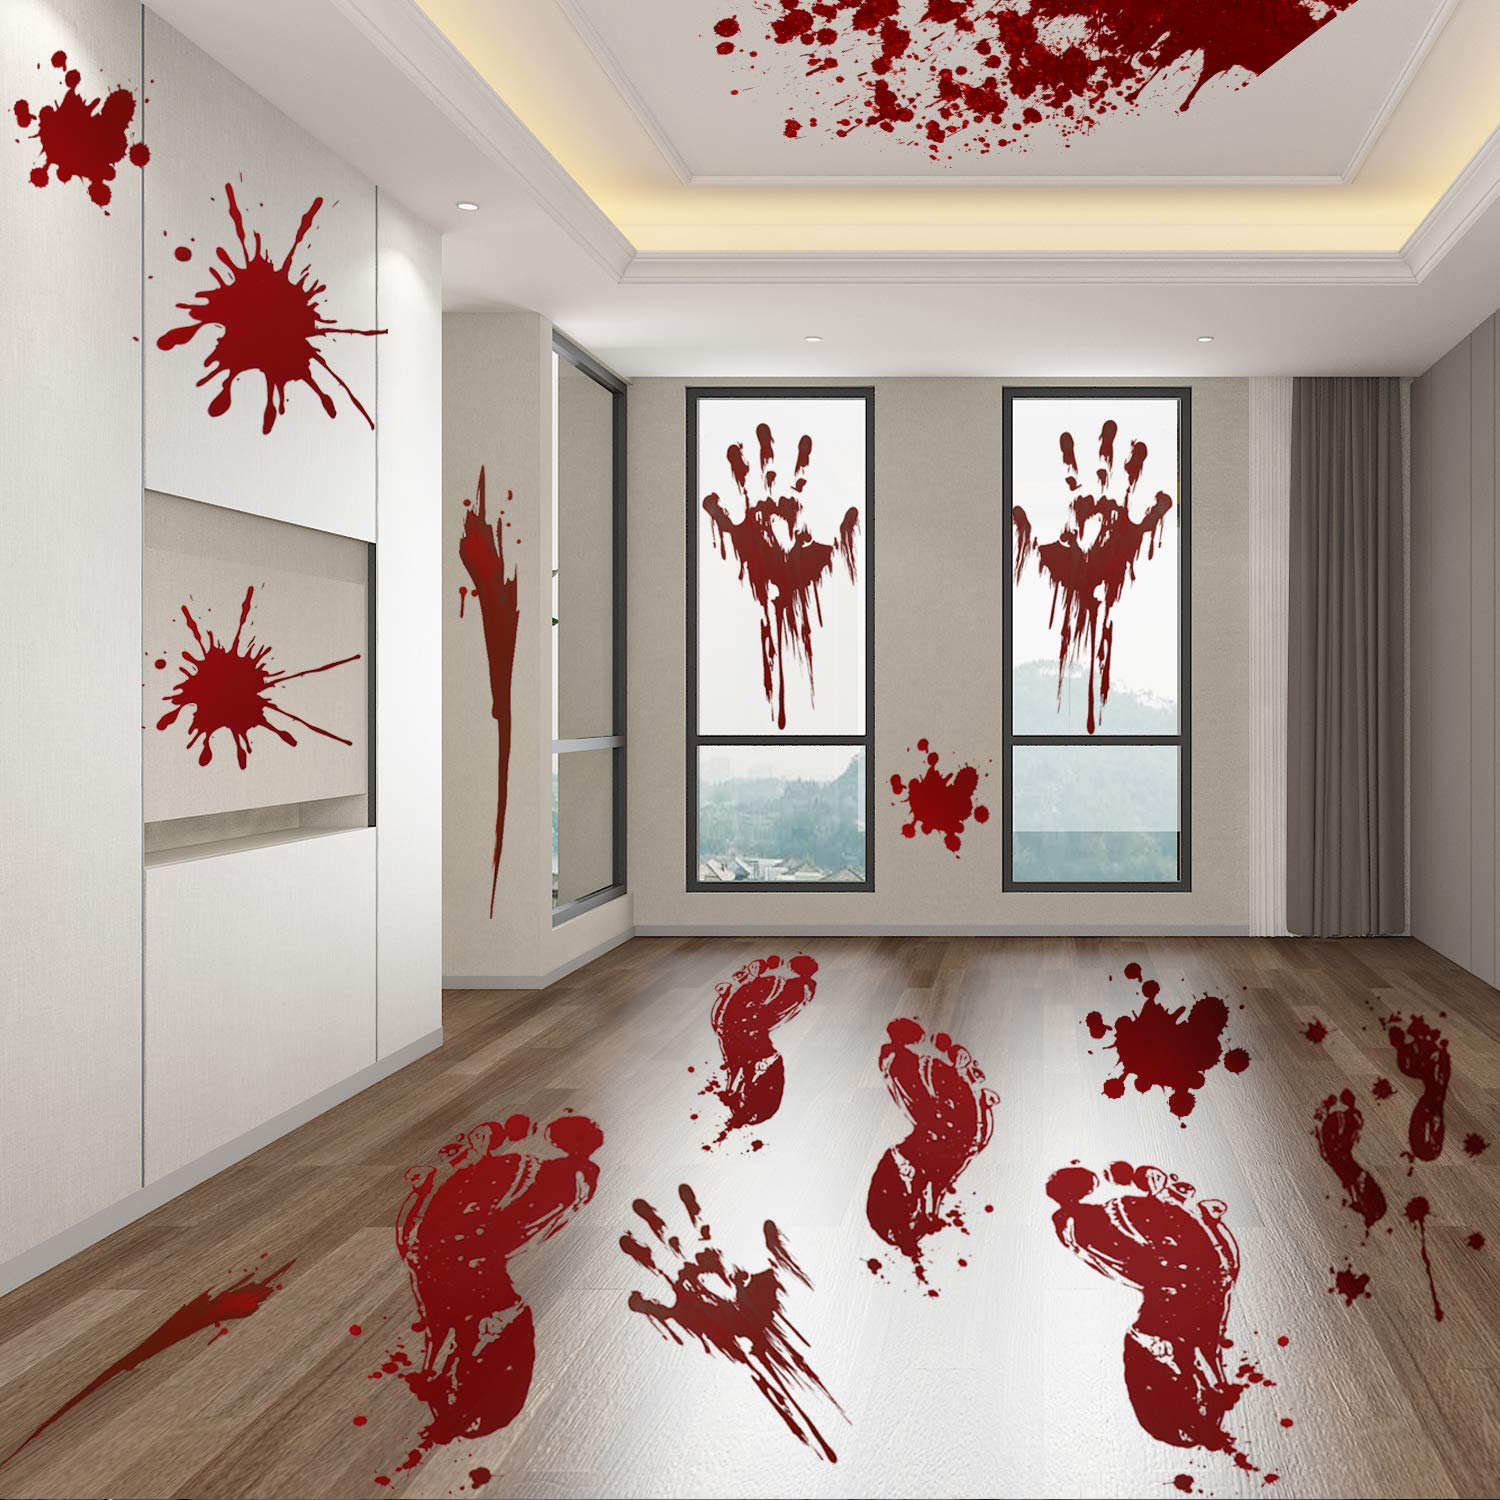 6 Sheets 78pcs Halloween Bloody Handprint Footprint Decals Stickers Decorations - Halloween Party Supplies - Vampire Zombie Fake Bloody Print For Window Wall Floor Bathtub Clings Decals Decor Jeicy